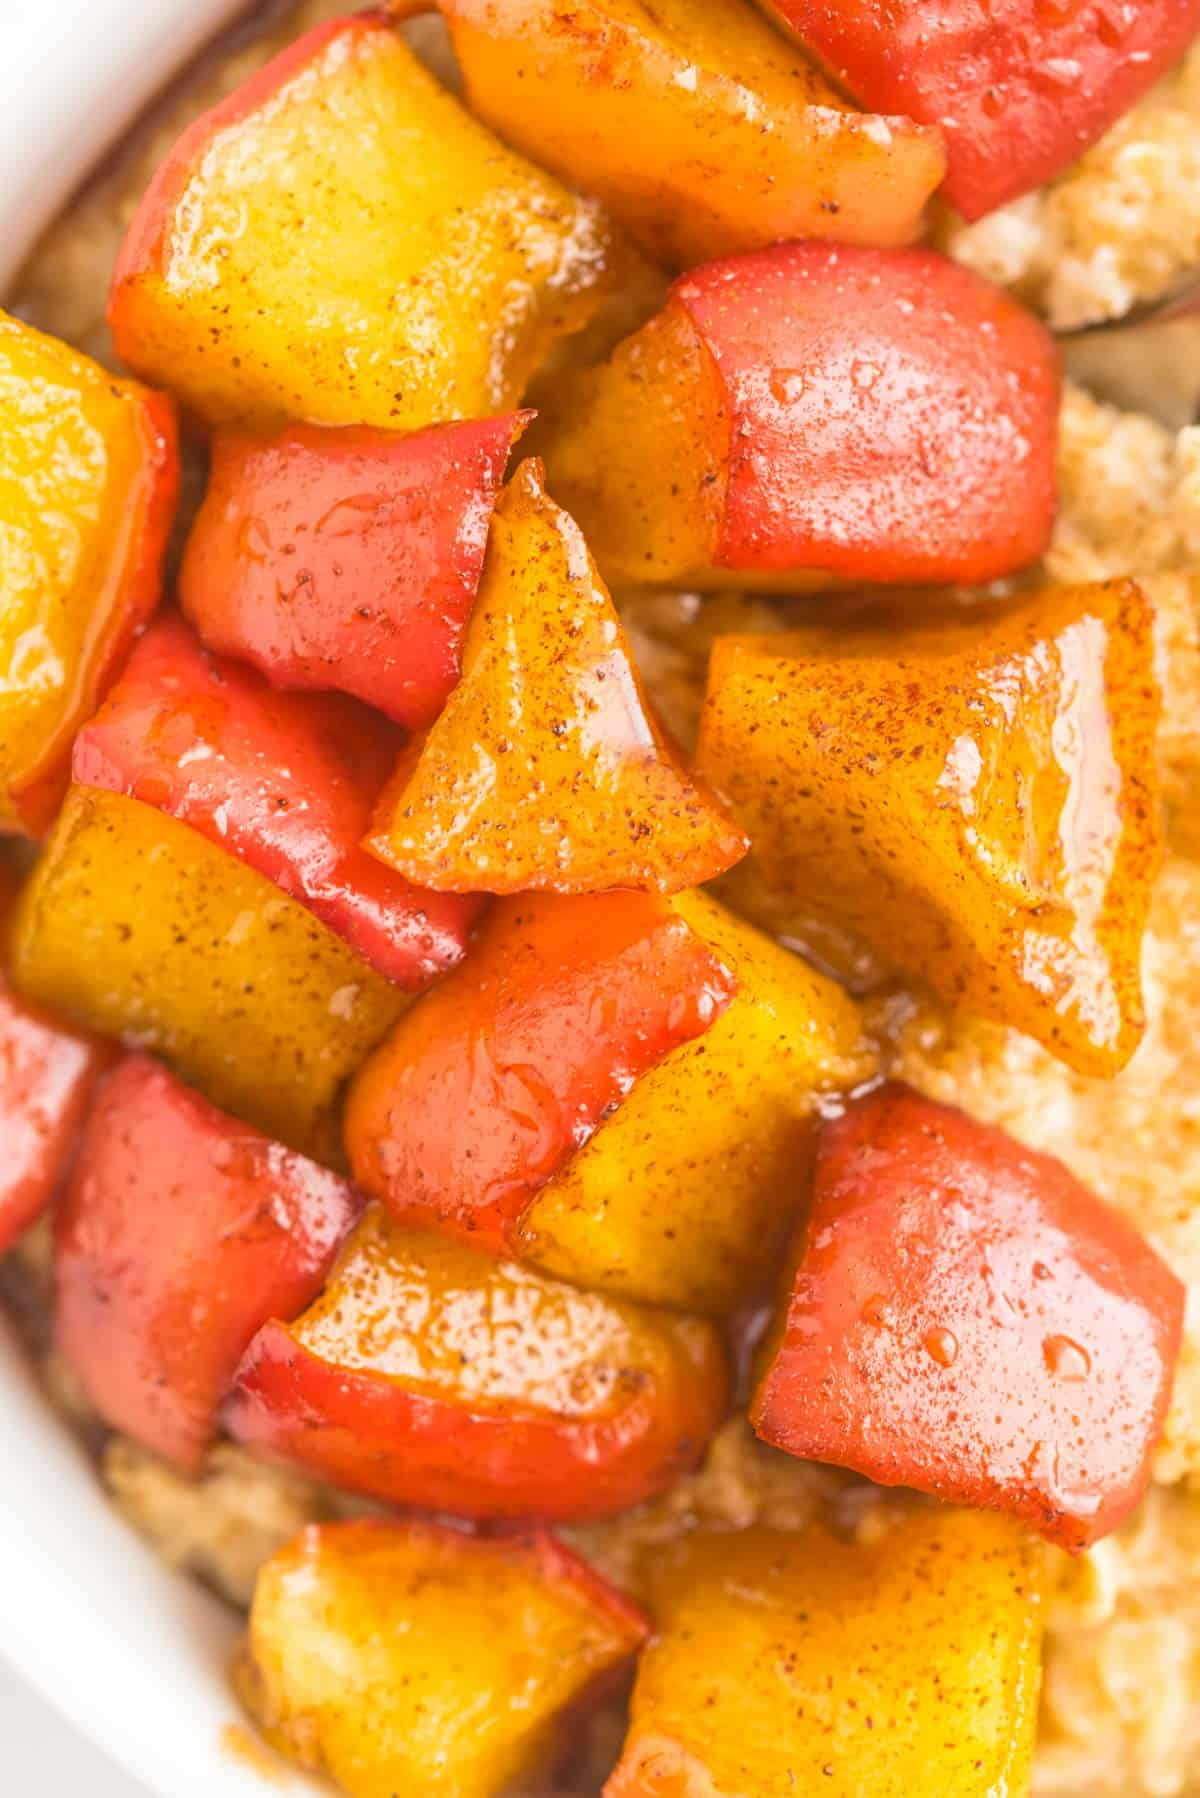 Close up of cooked diced apples in a cinnamon syrup.